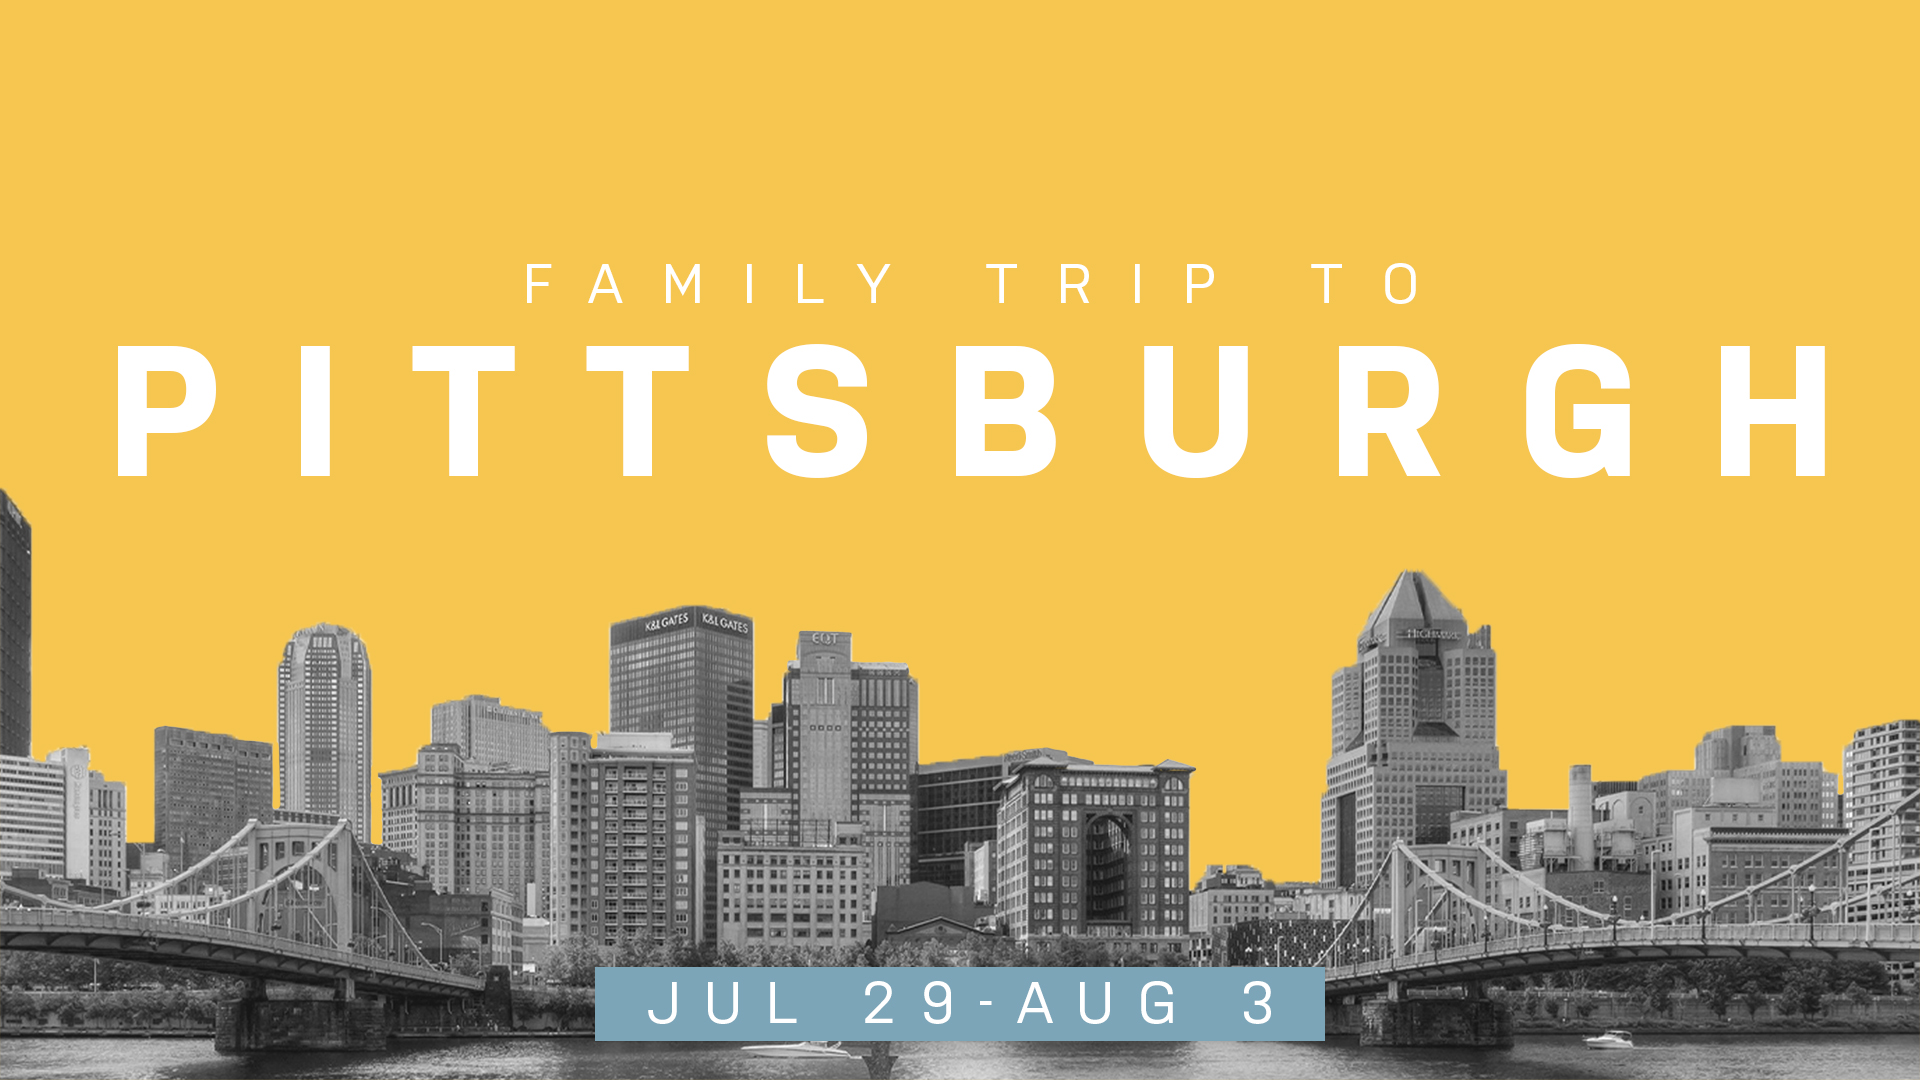 Pittsburgh Family Trip